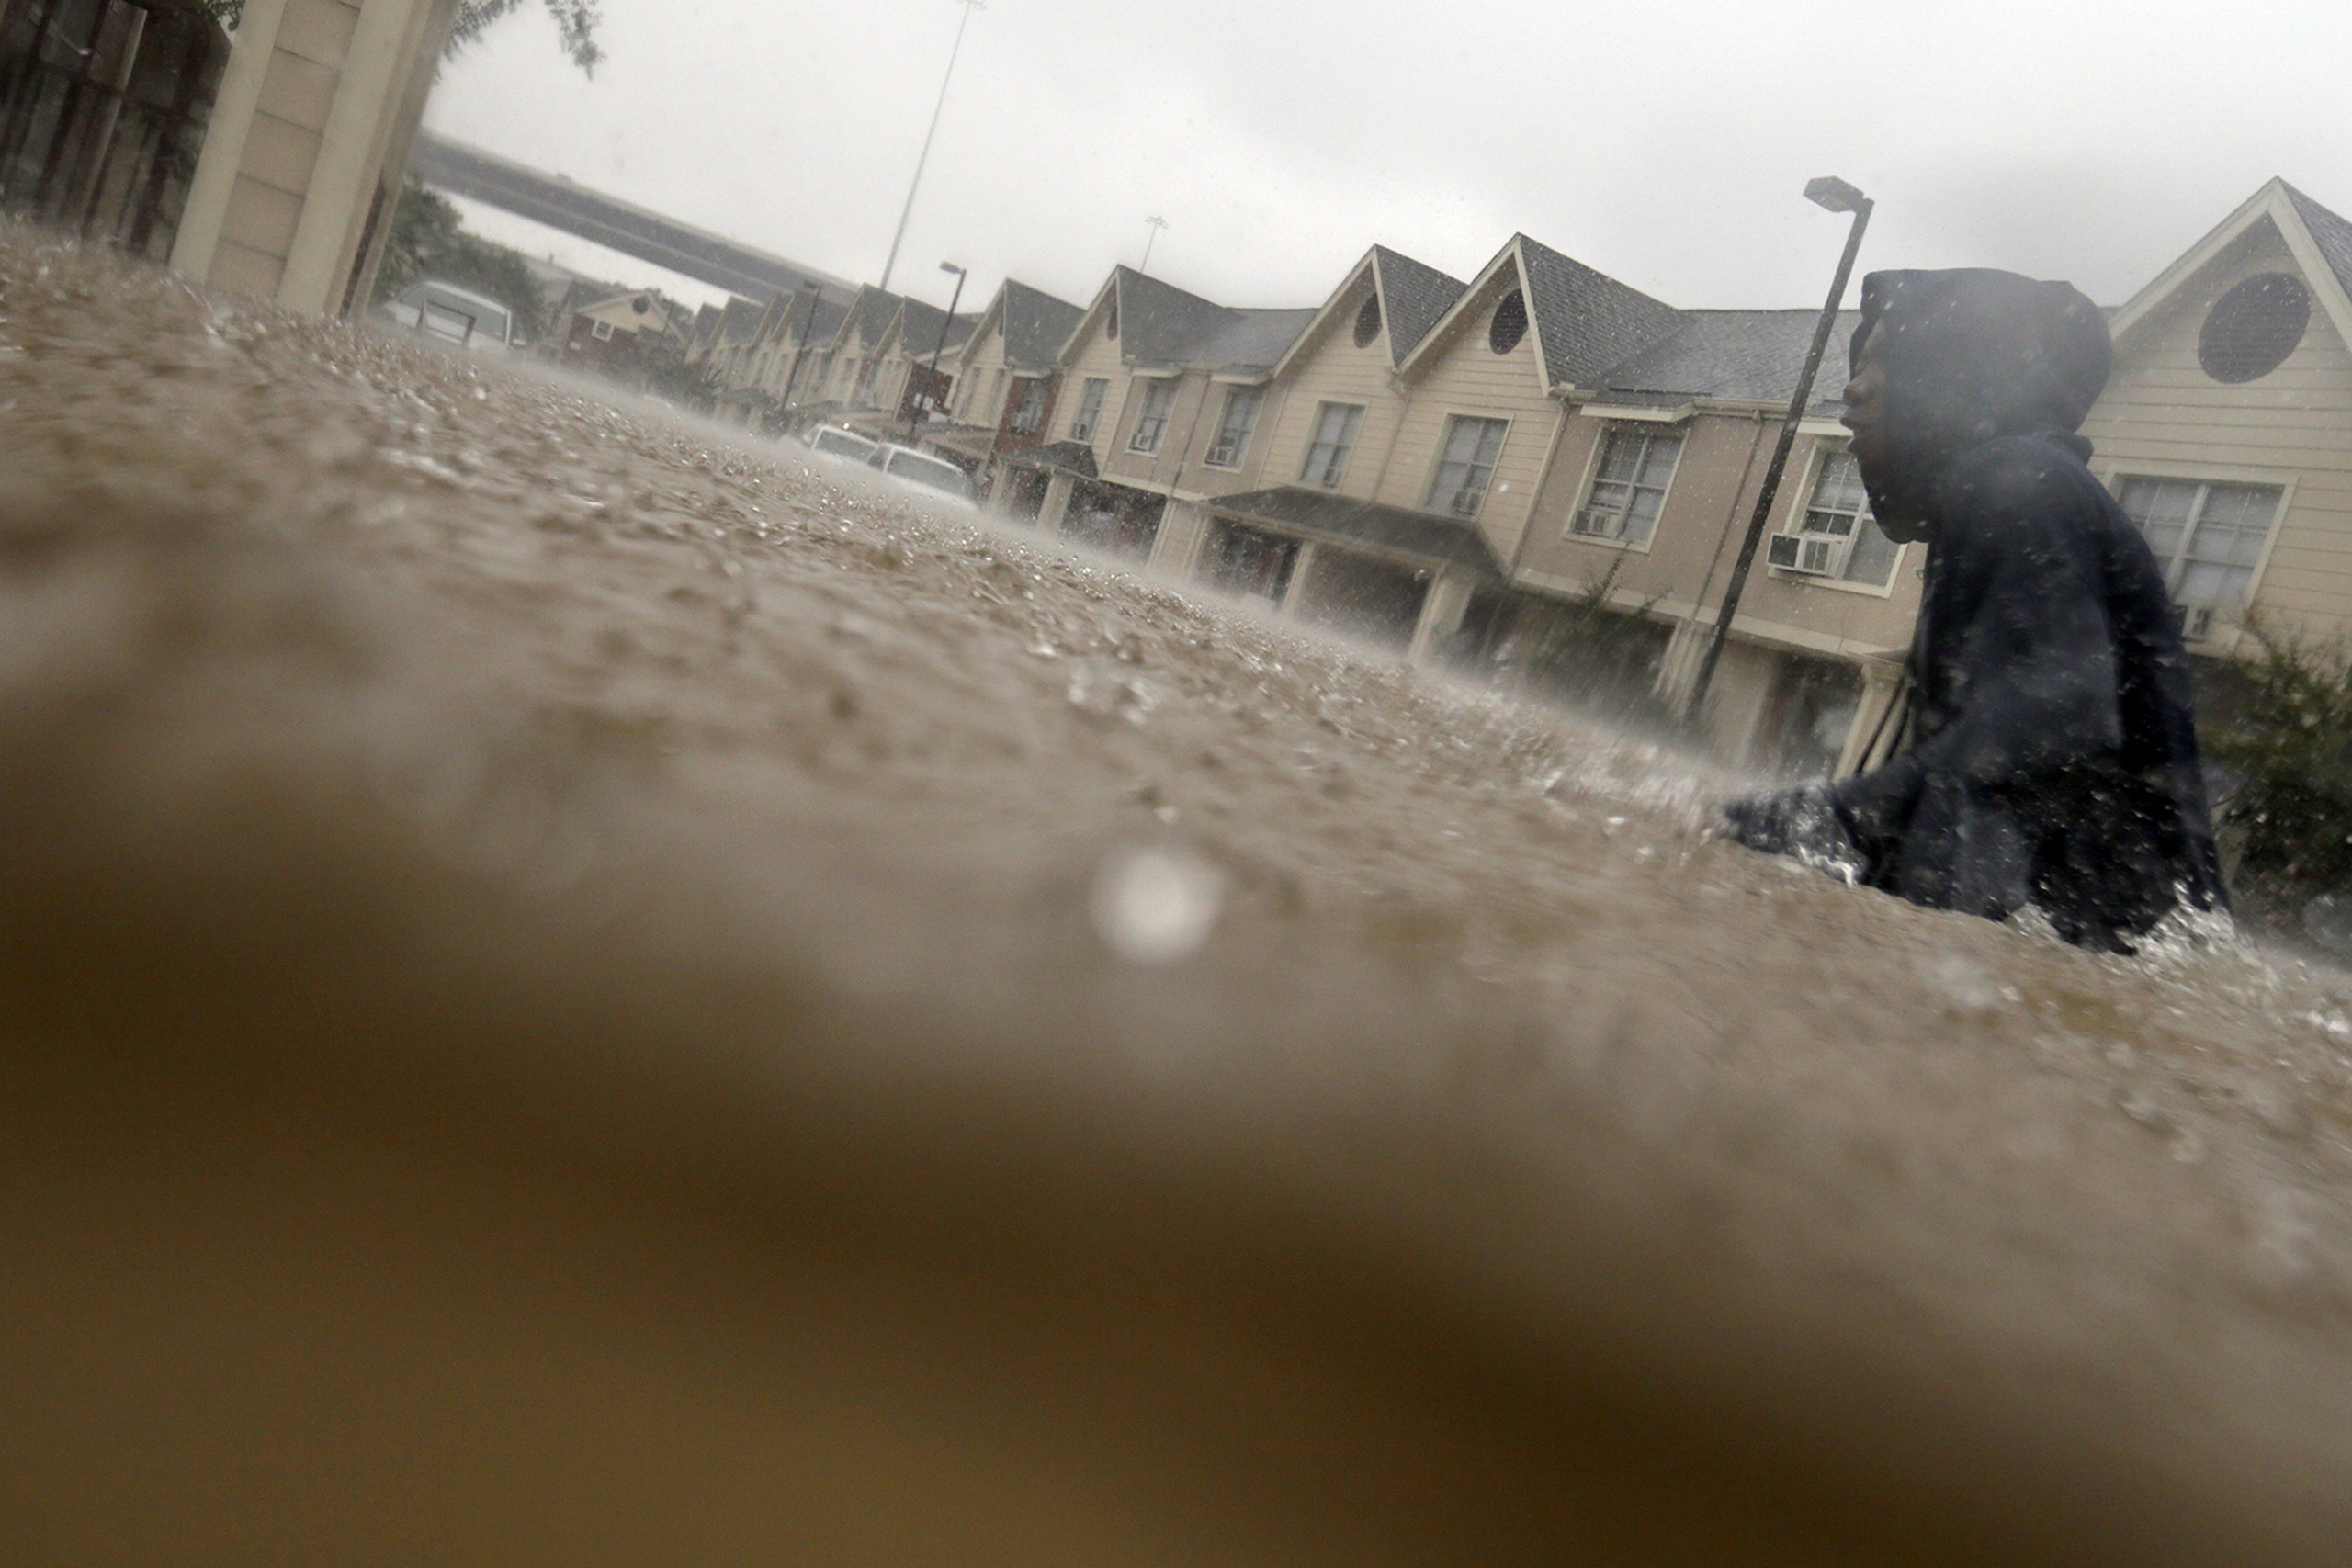 A child makes his way through floodwaters from Tropical Storm Harvey while checking on neighbors at his apartment complex in Houston, Sunday, Aug. 27, 2017. The remnants of Hurricane Harvey sent devastating floods pouring into Houston Sunday as rising water chased thousands of people to rooftops or higher ground. (AP Photo/LM Otero)